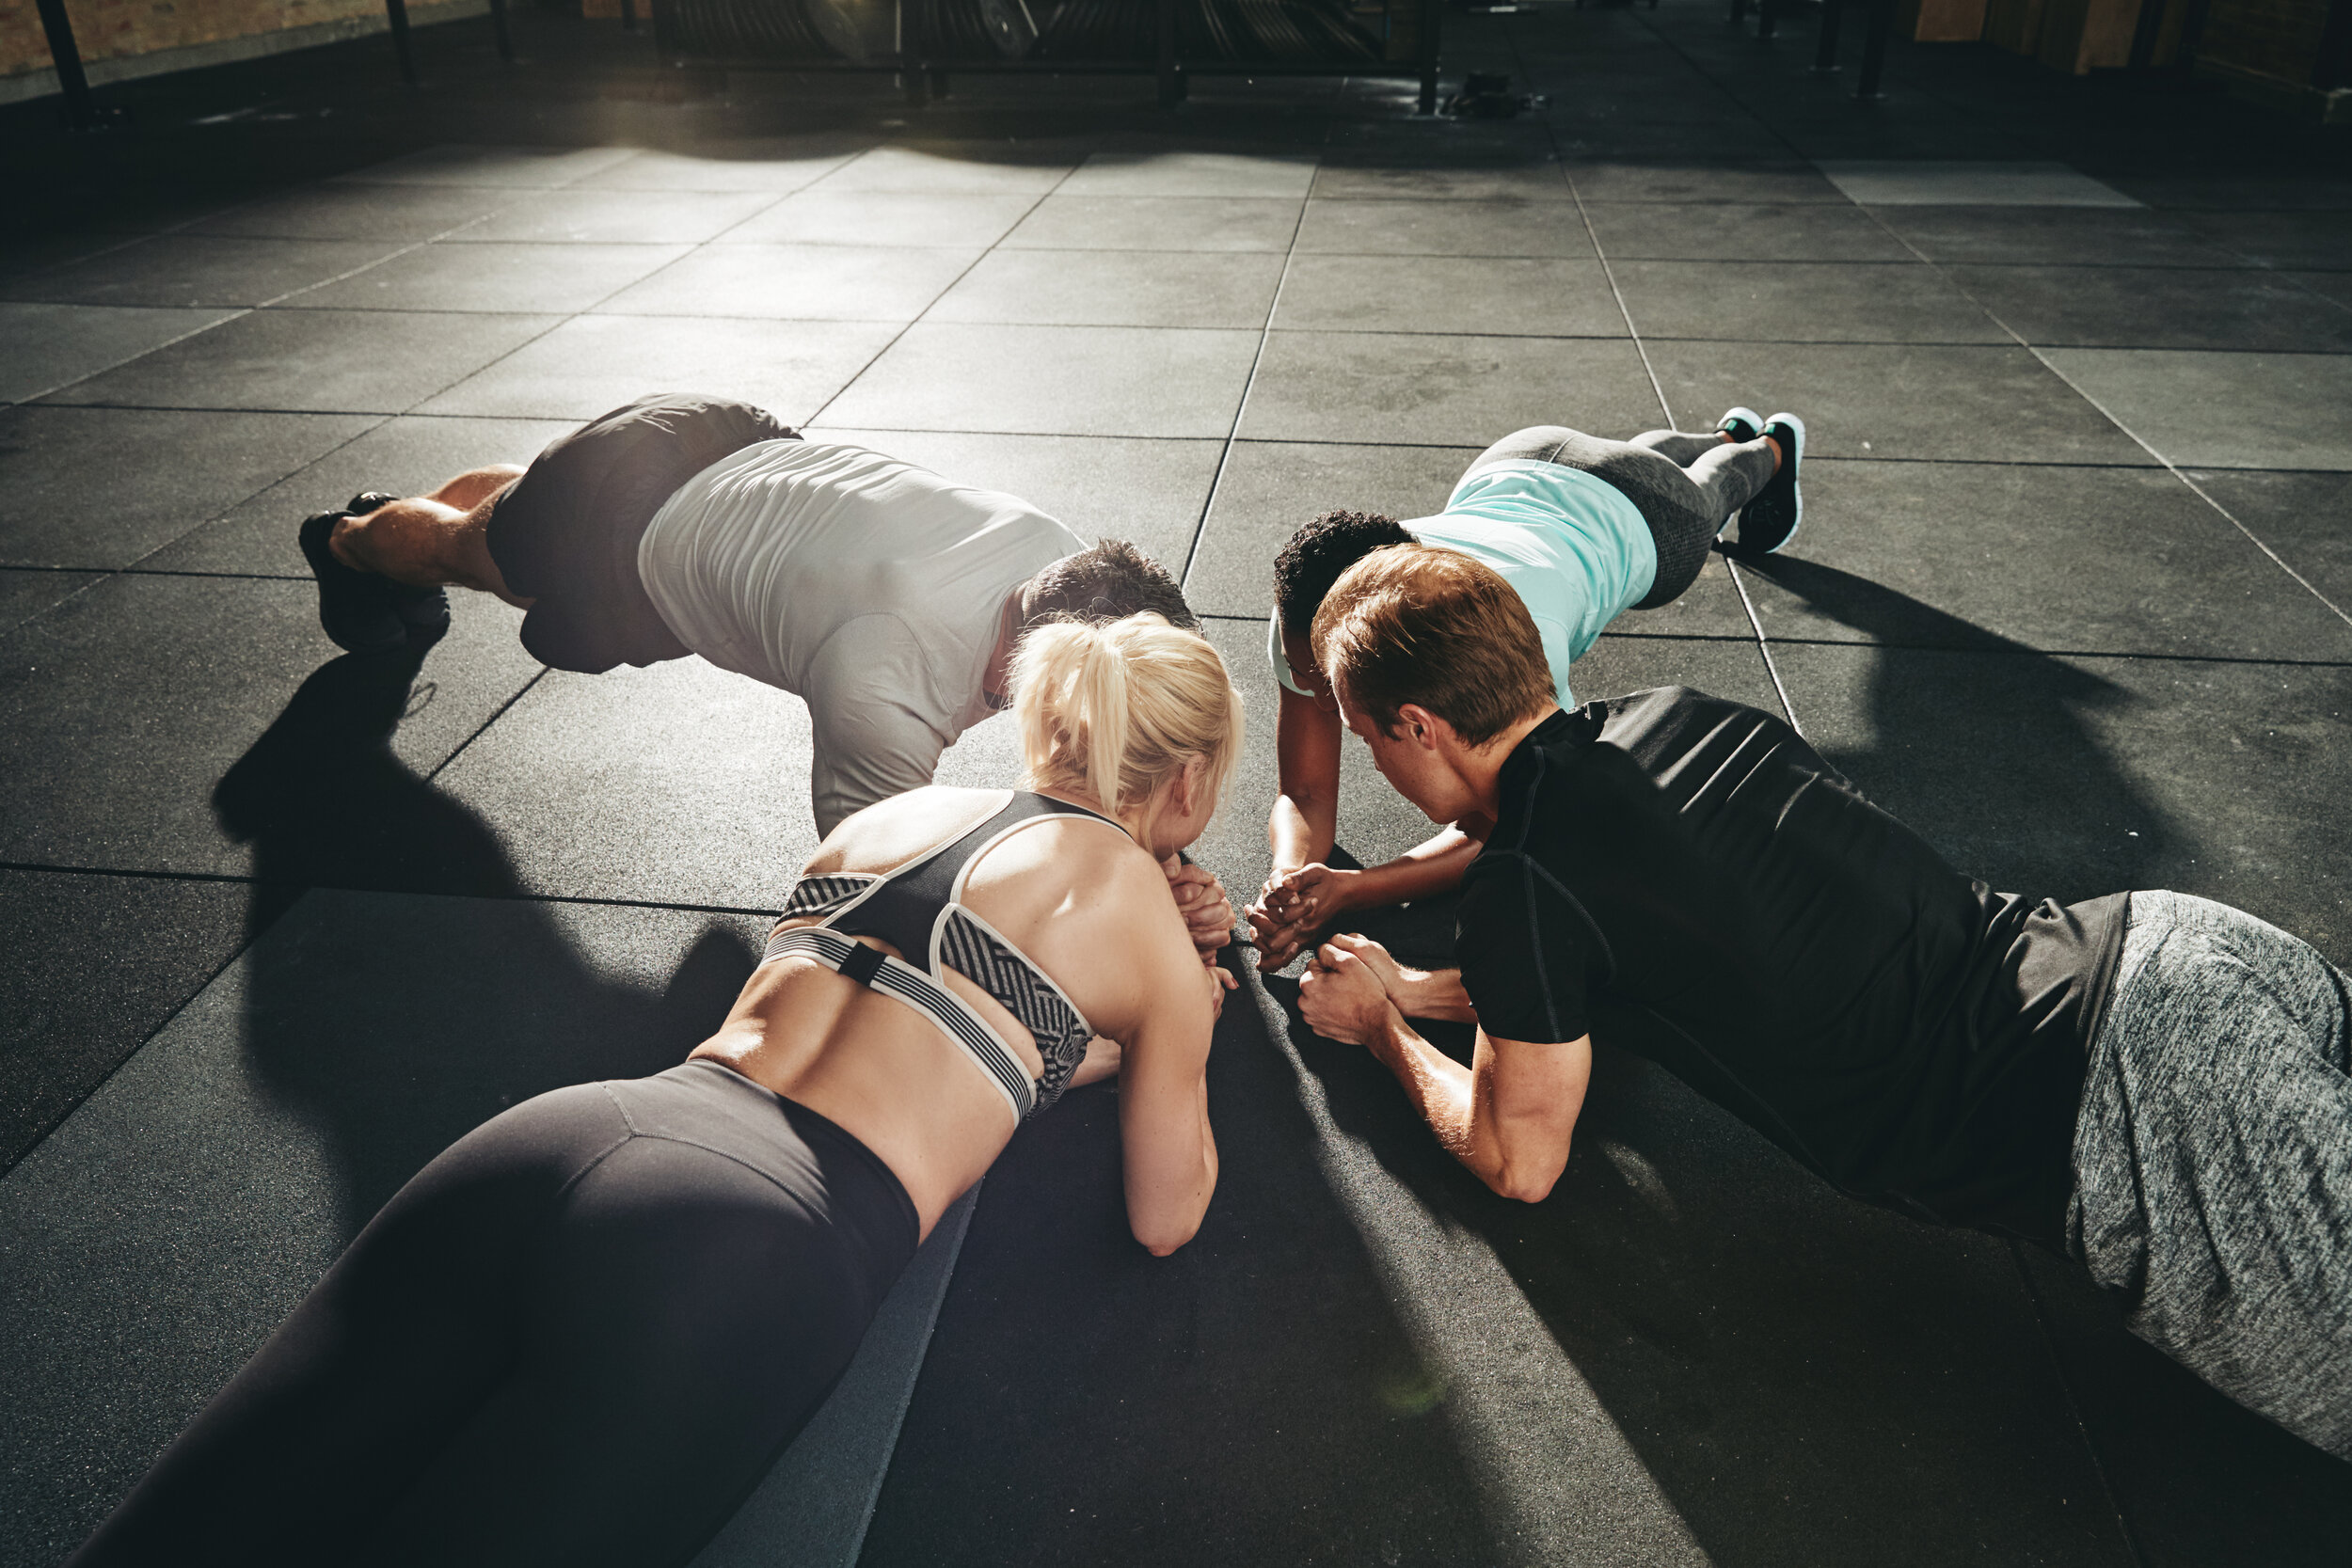 group-of-people-planking-together-on-a-gym-floor-THRN62F.jpg